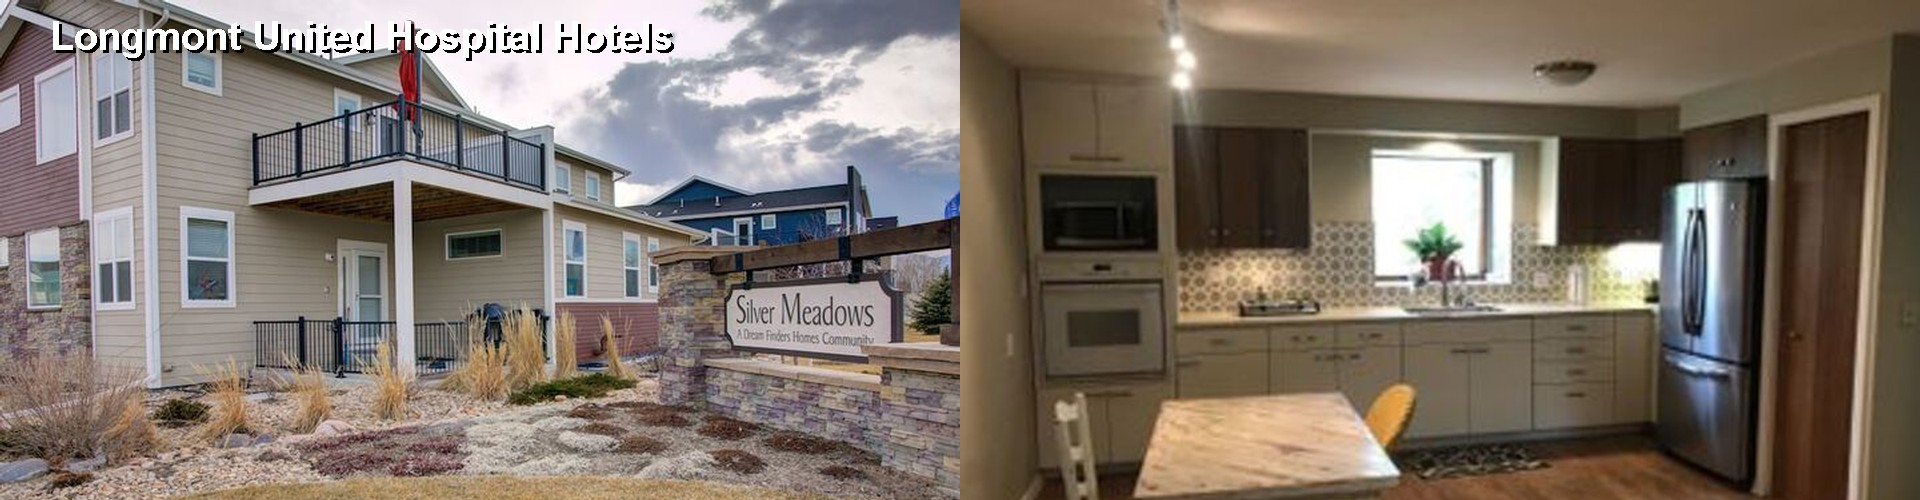 5 Best Hotels near Longmont United Hospital